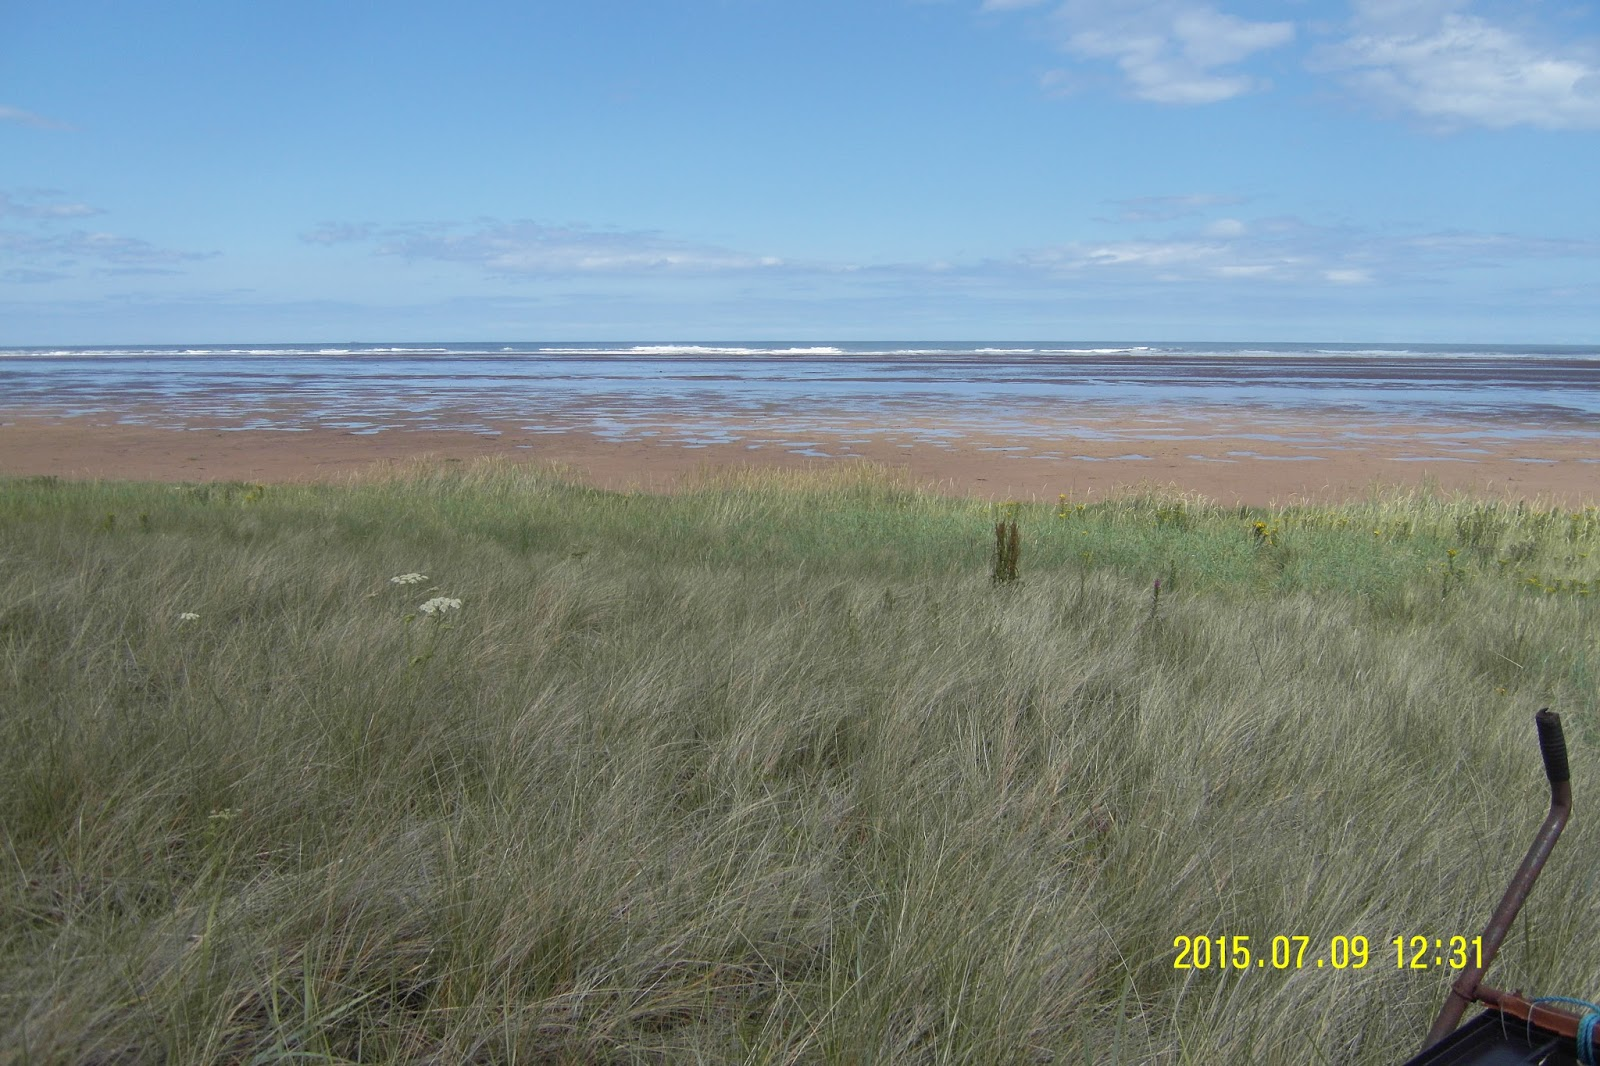 Blue lyme grass blue dune - You Can See The Clear Boundary Between The Sand And The Pioneer Species Such As Sea Couch And Lyme Grass These Hardy Grasses Help Stabilise The Dune By